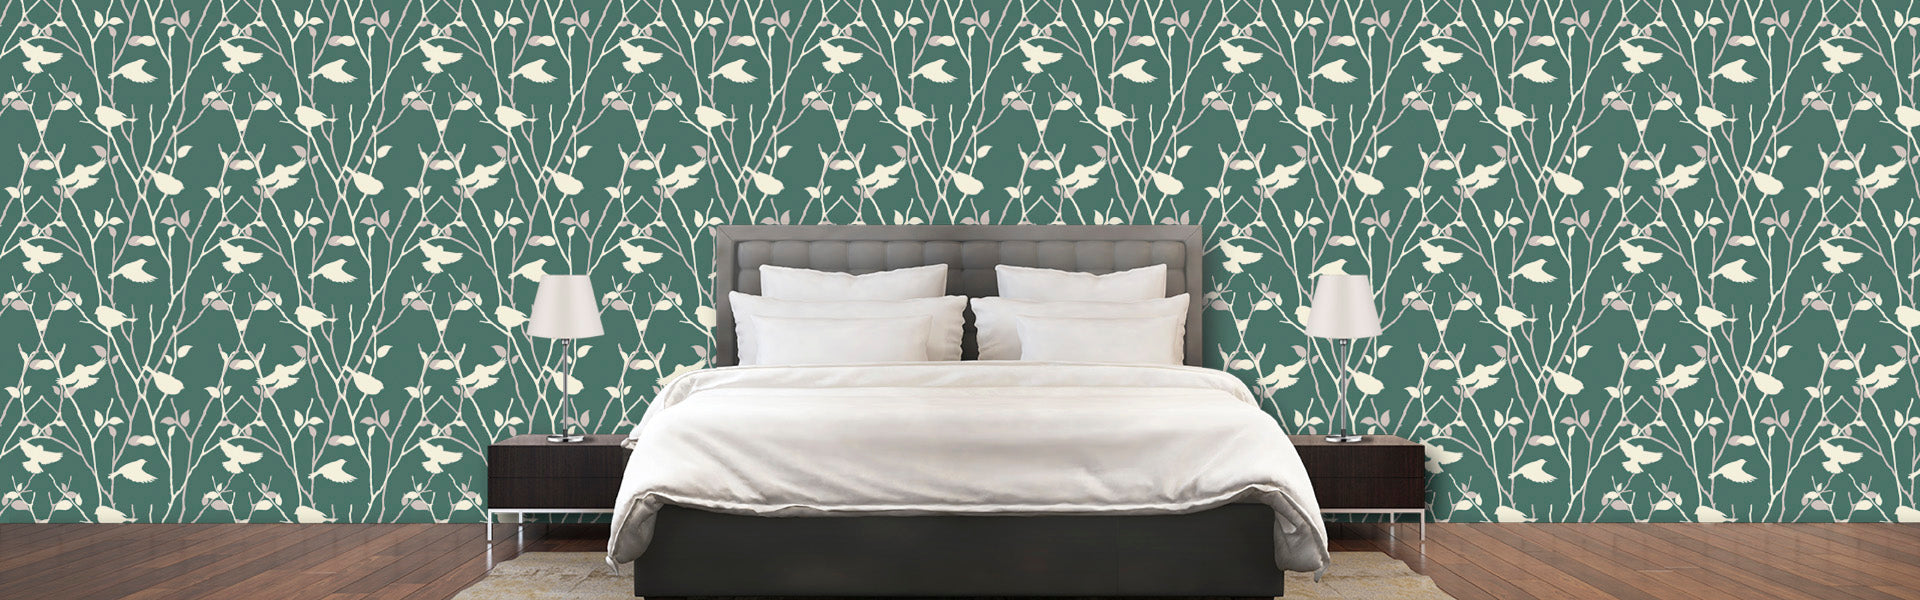 grey bird animal fabric removable wallpaper